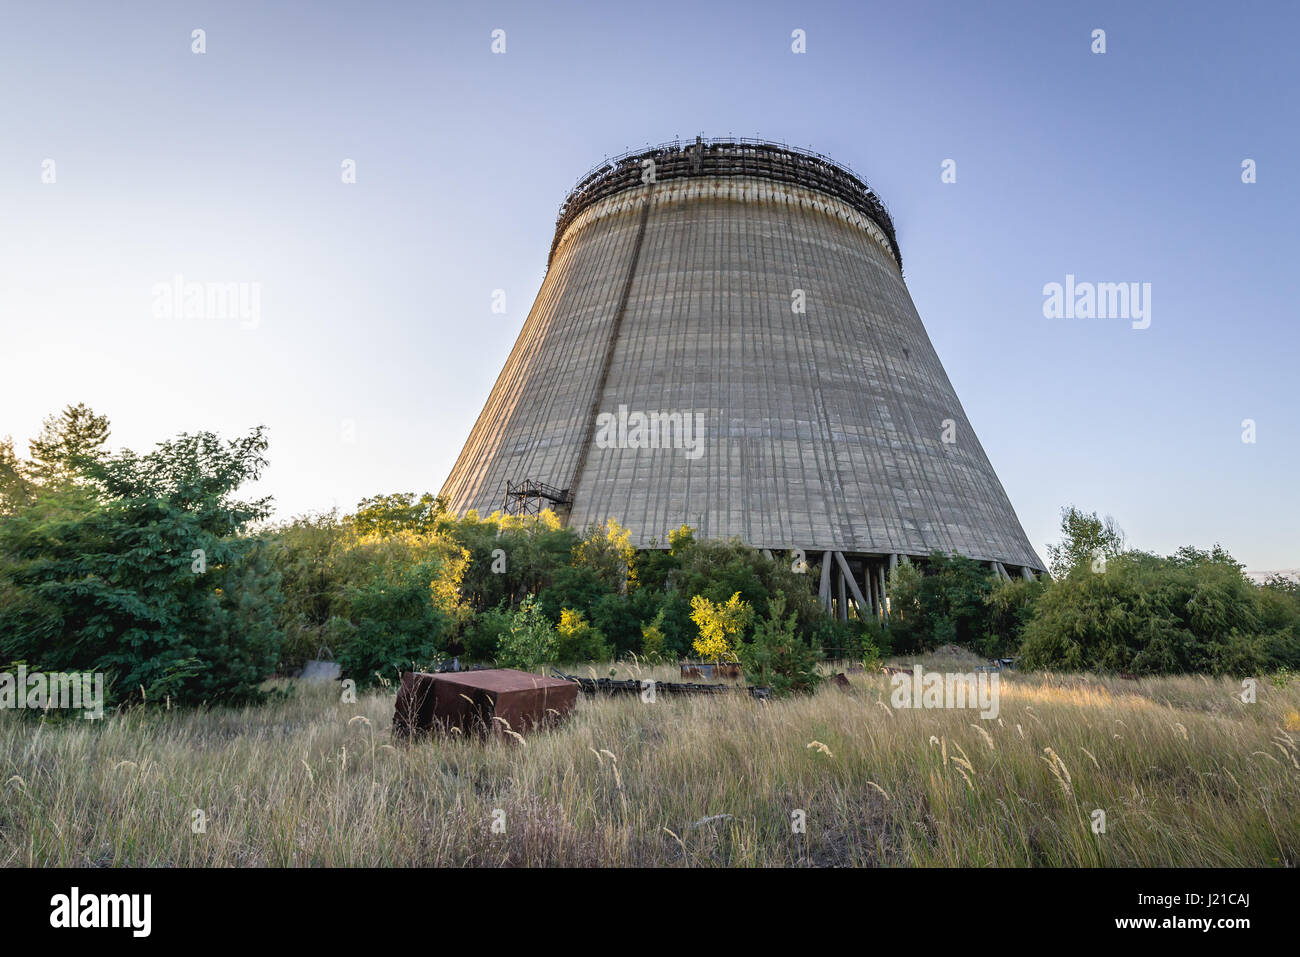 Cooling tower of Chernobyl Nuclear Power Plant in Zone of Alienation around the nuclear reactor disaster in Ukraine Stock Photo